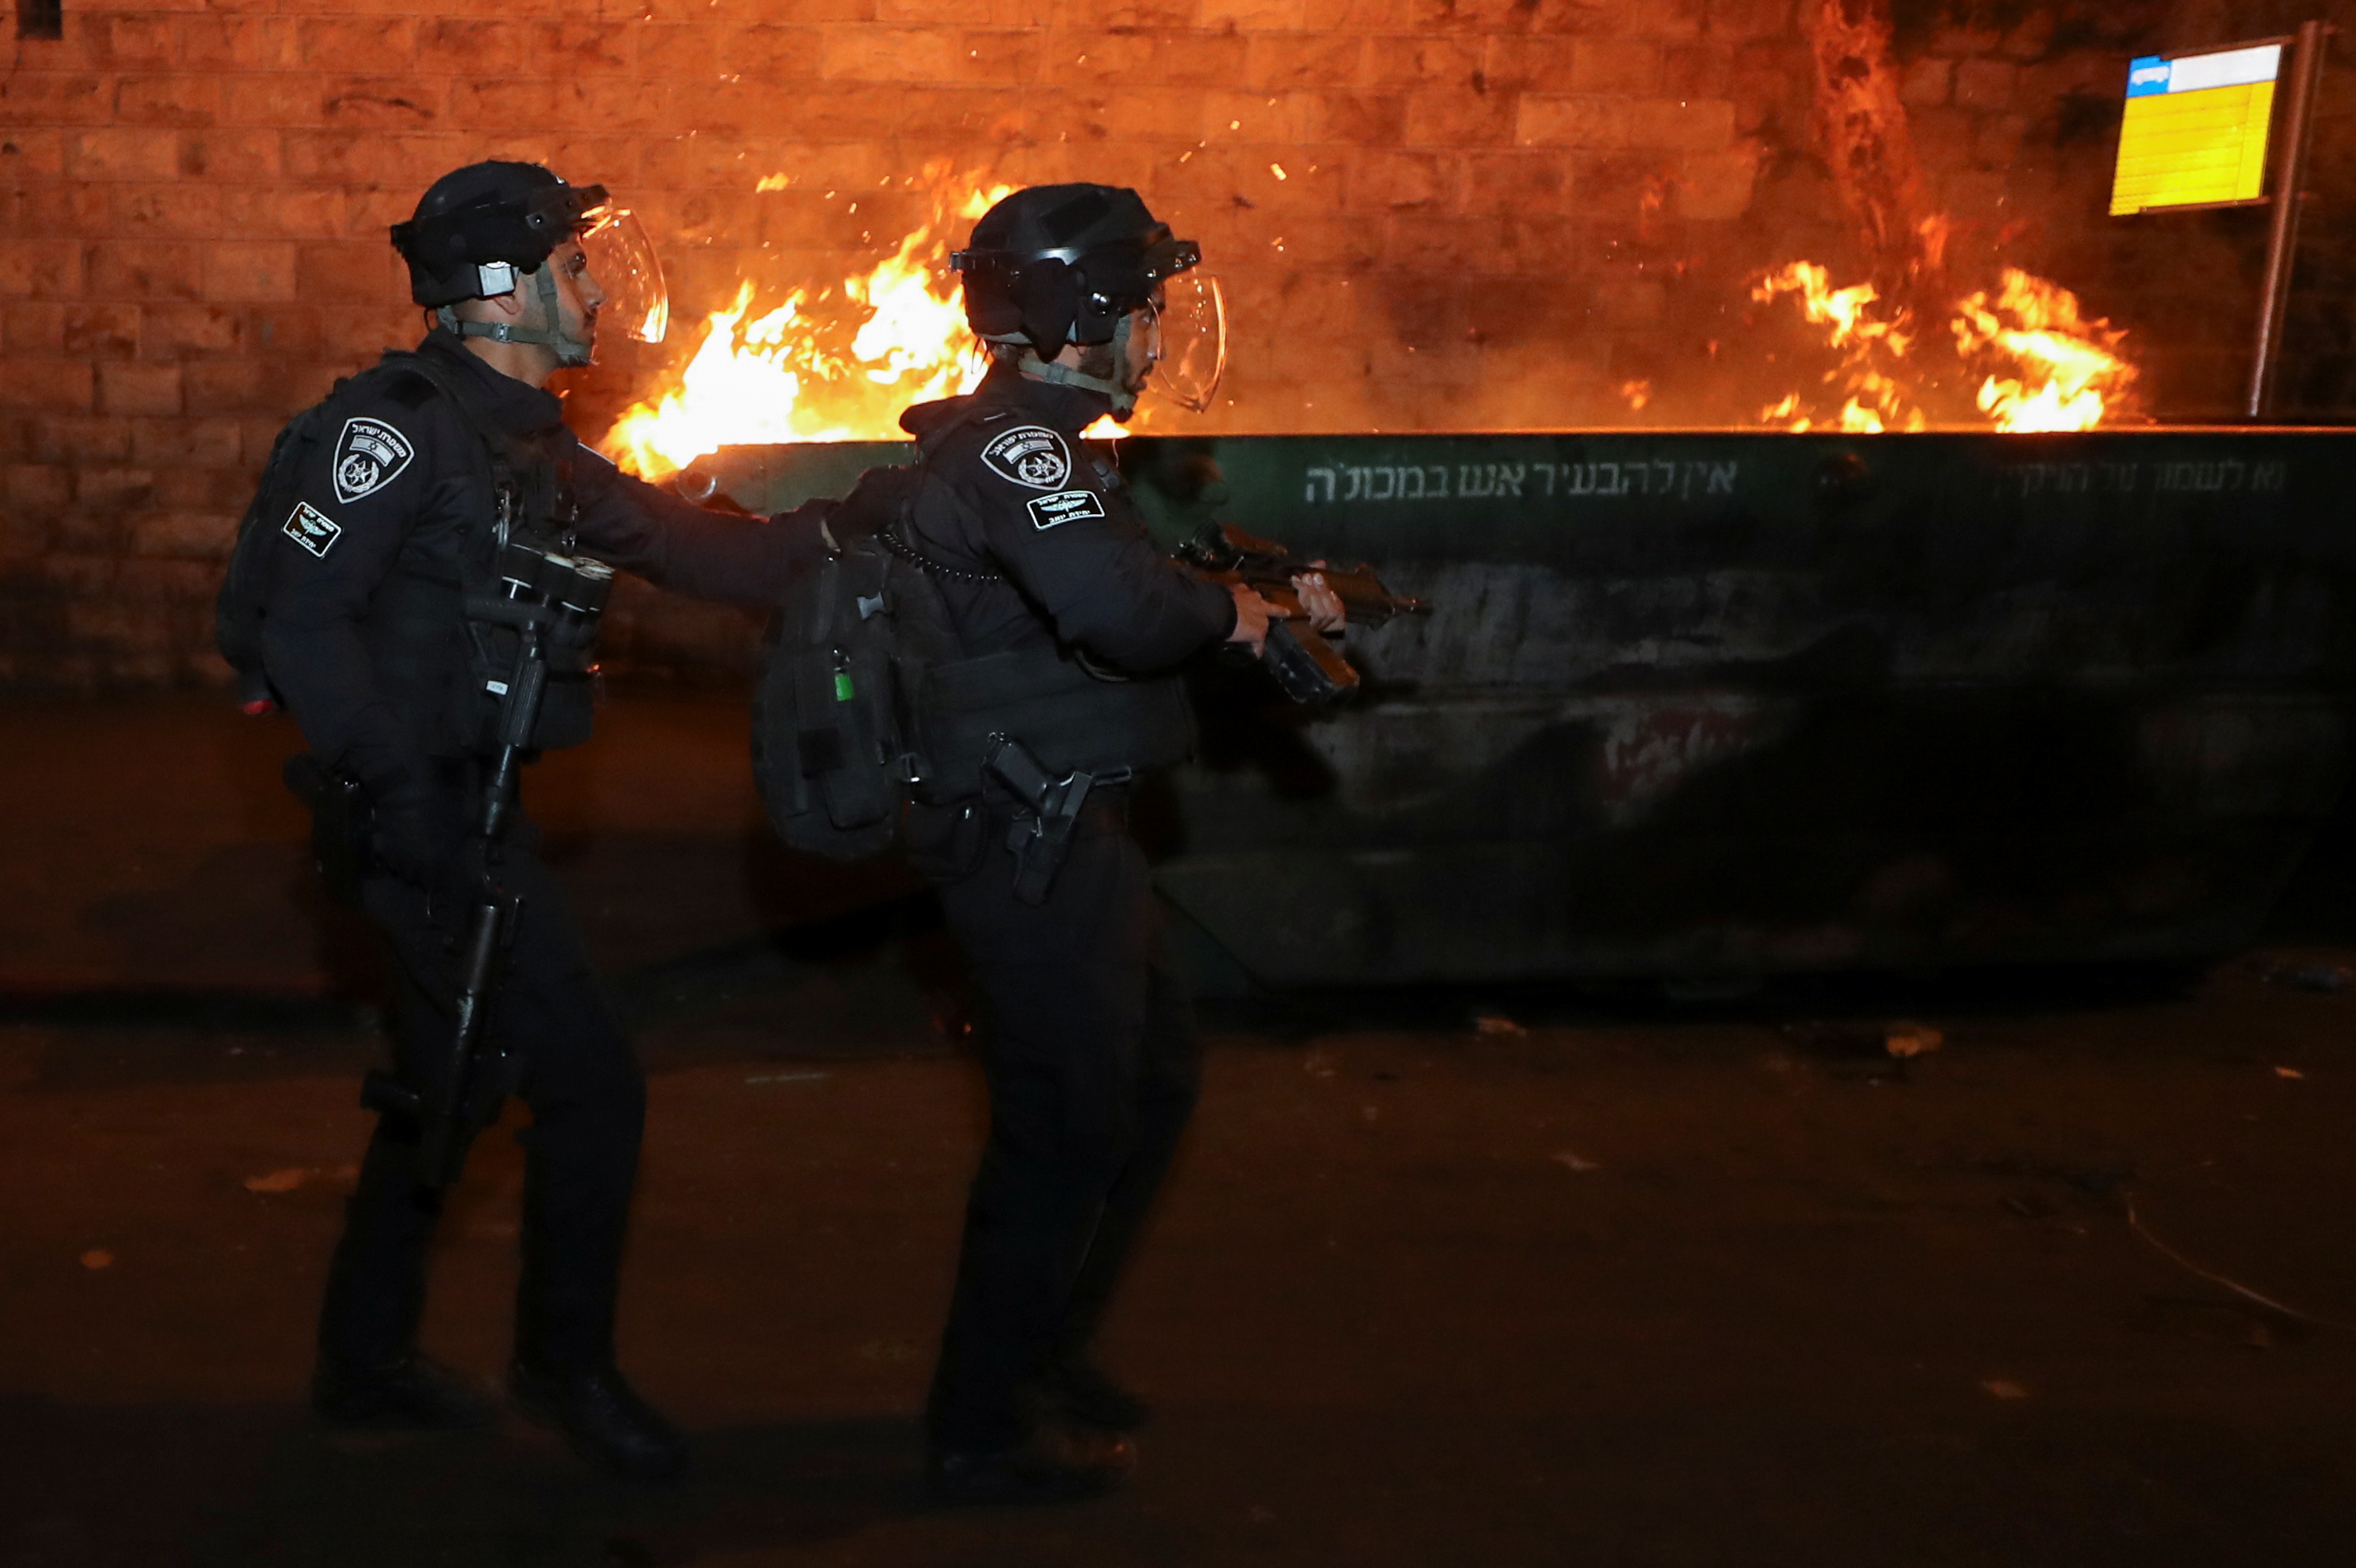 Israeli police officers walk during clashes with Palestinian protesters, as the Muslim holy fasting month of Ramadan continues, in Jerusalem, April 24, 2021. REUTERS/Ammar Awad